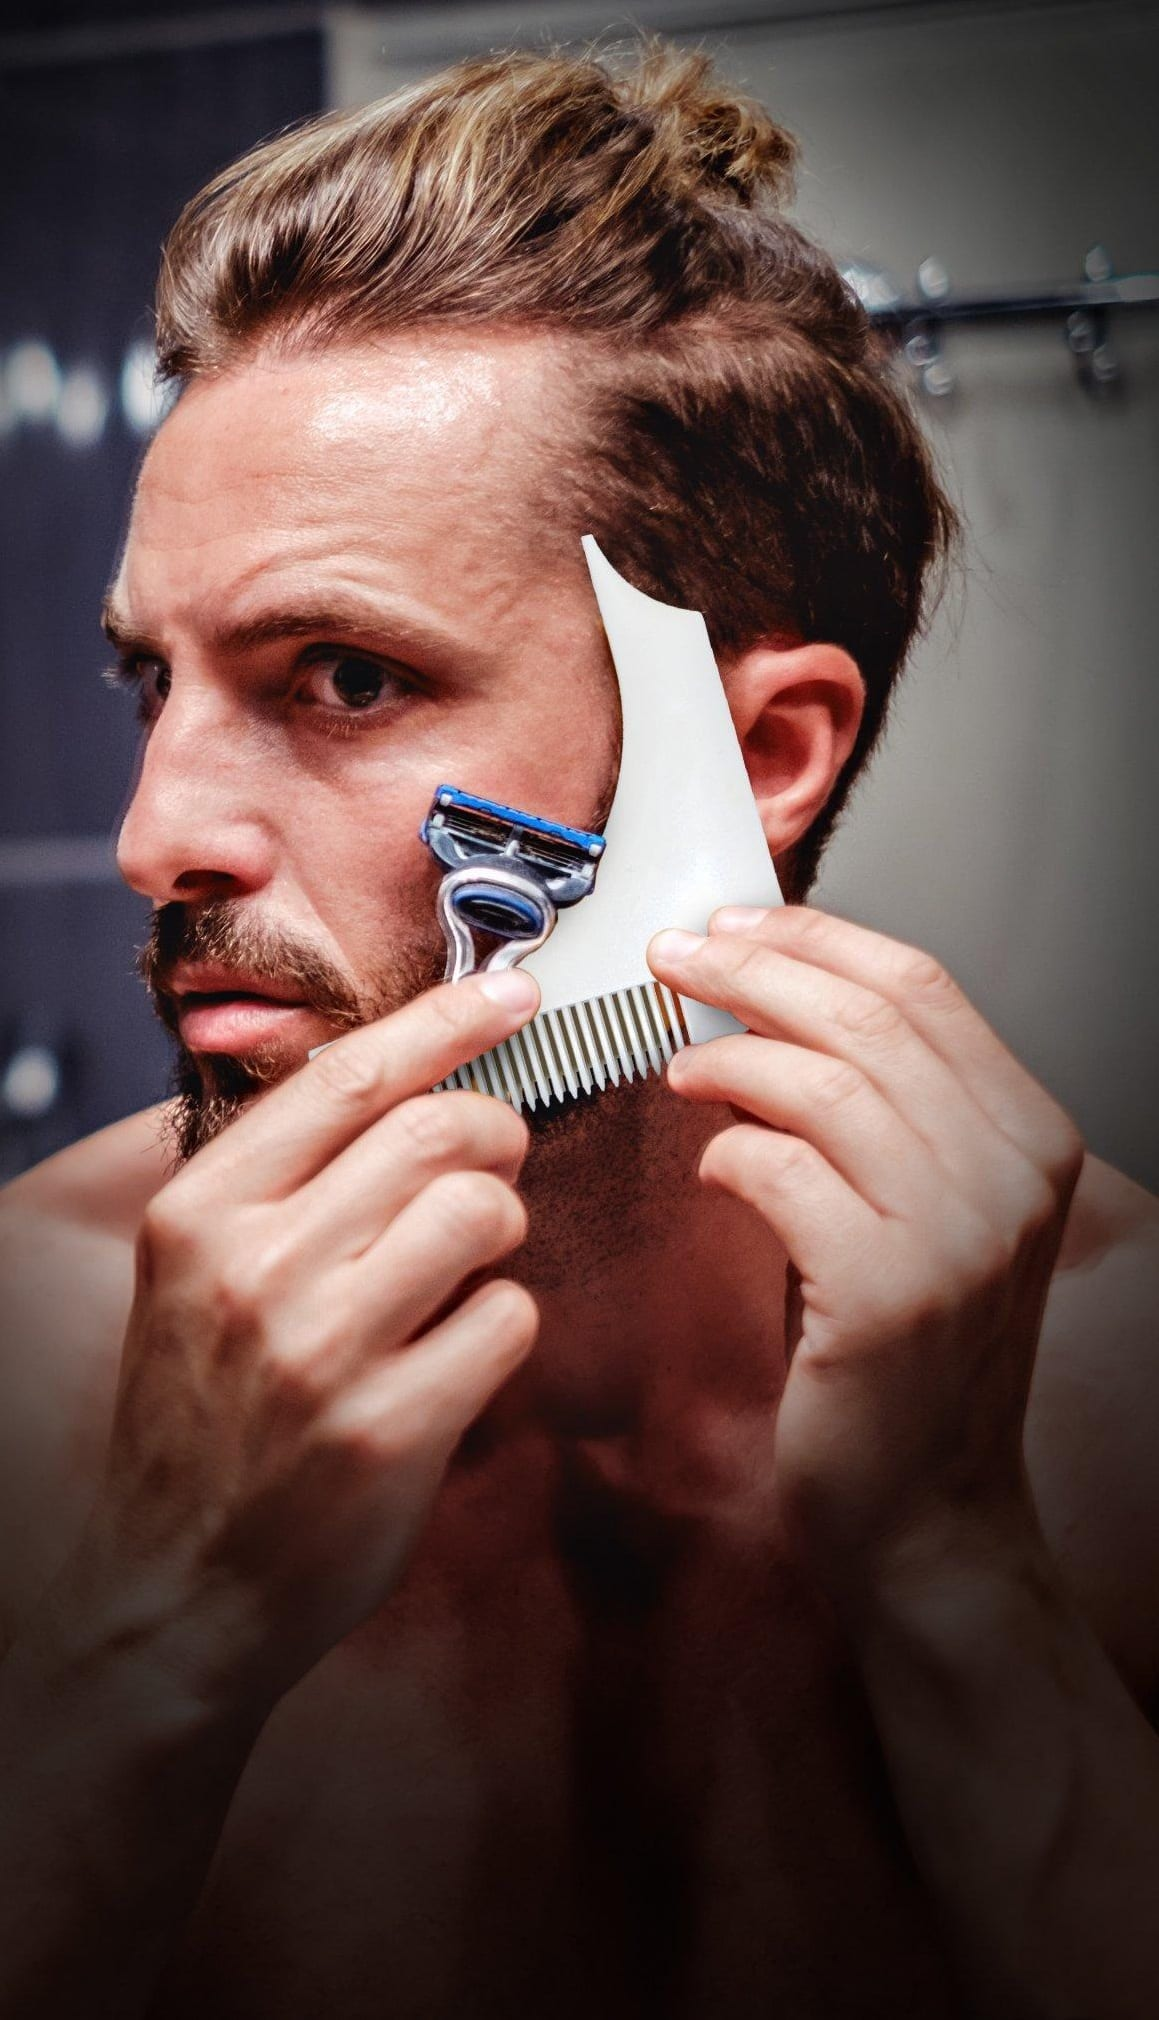 beard shaping tools